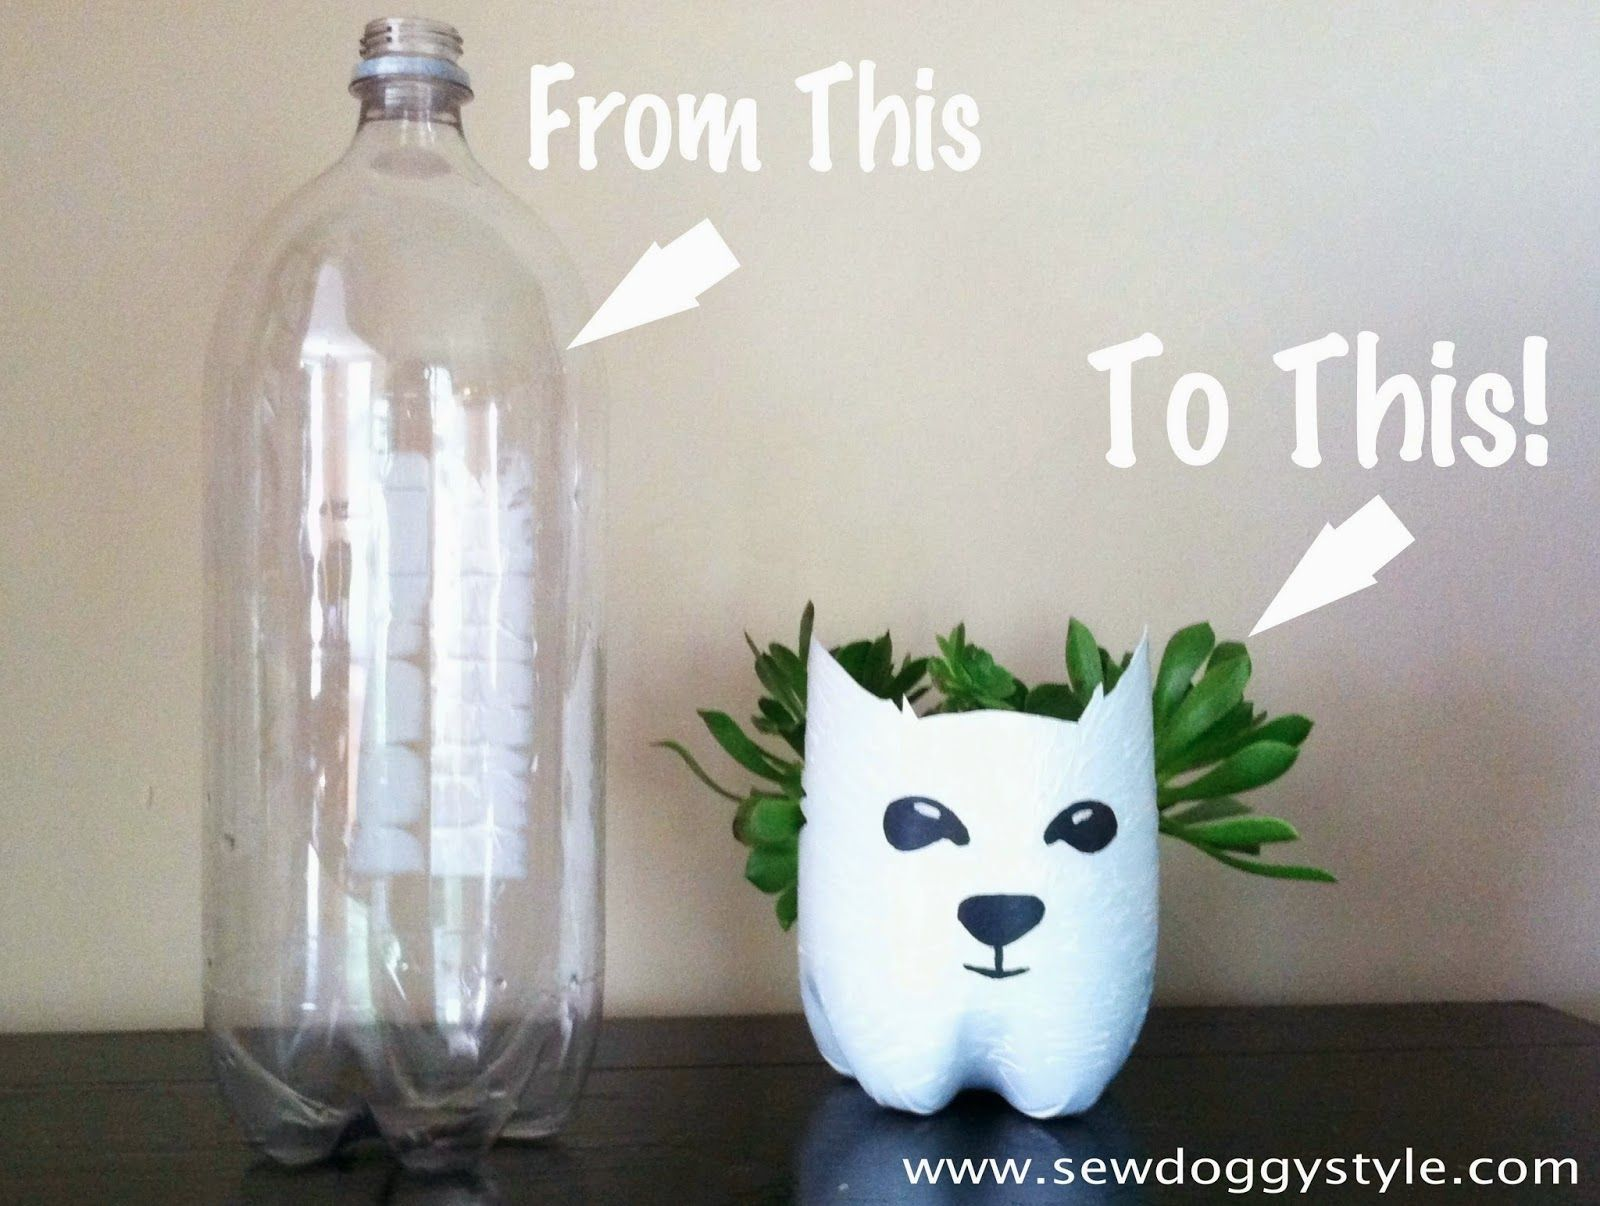 Recycled bottle planters diy recycled - Diy Recycled Pet Planter From A Soda Bottle